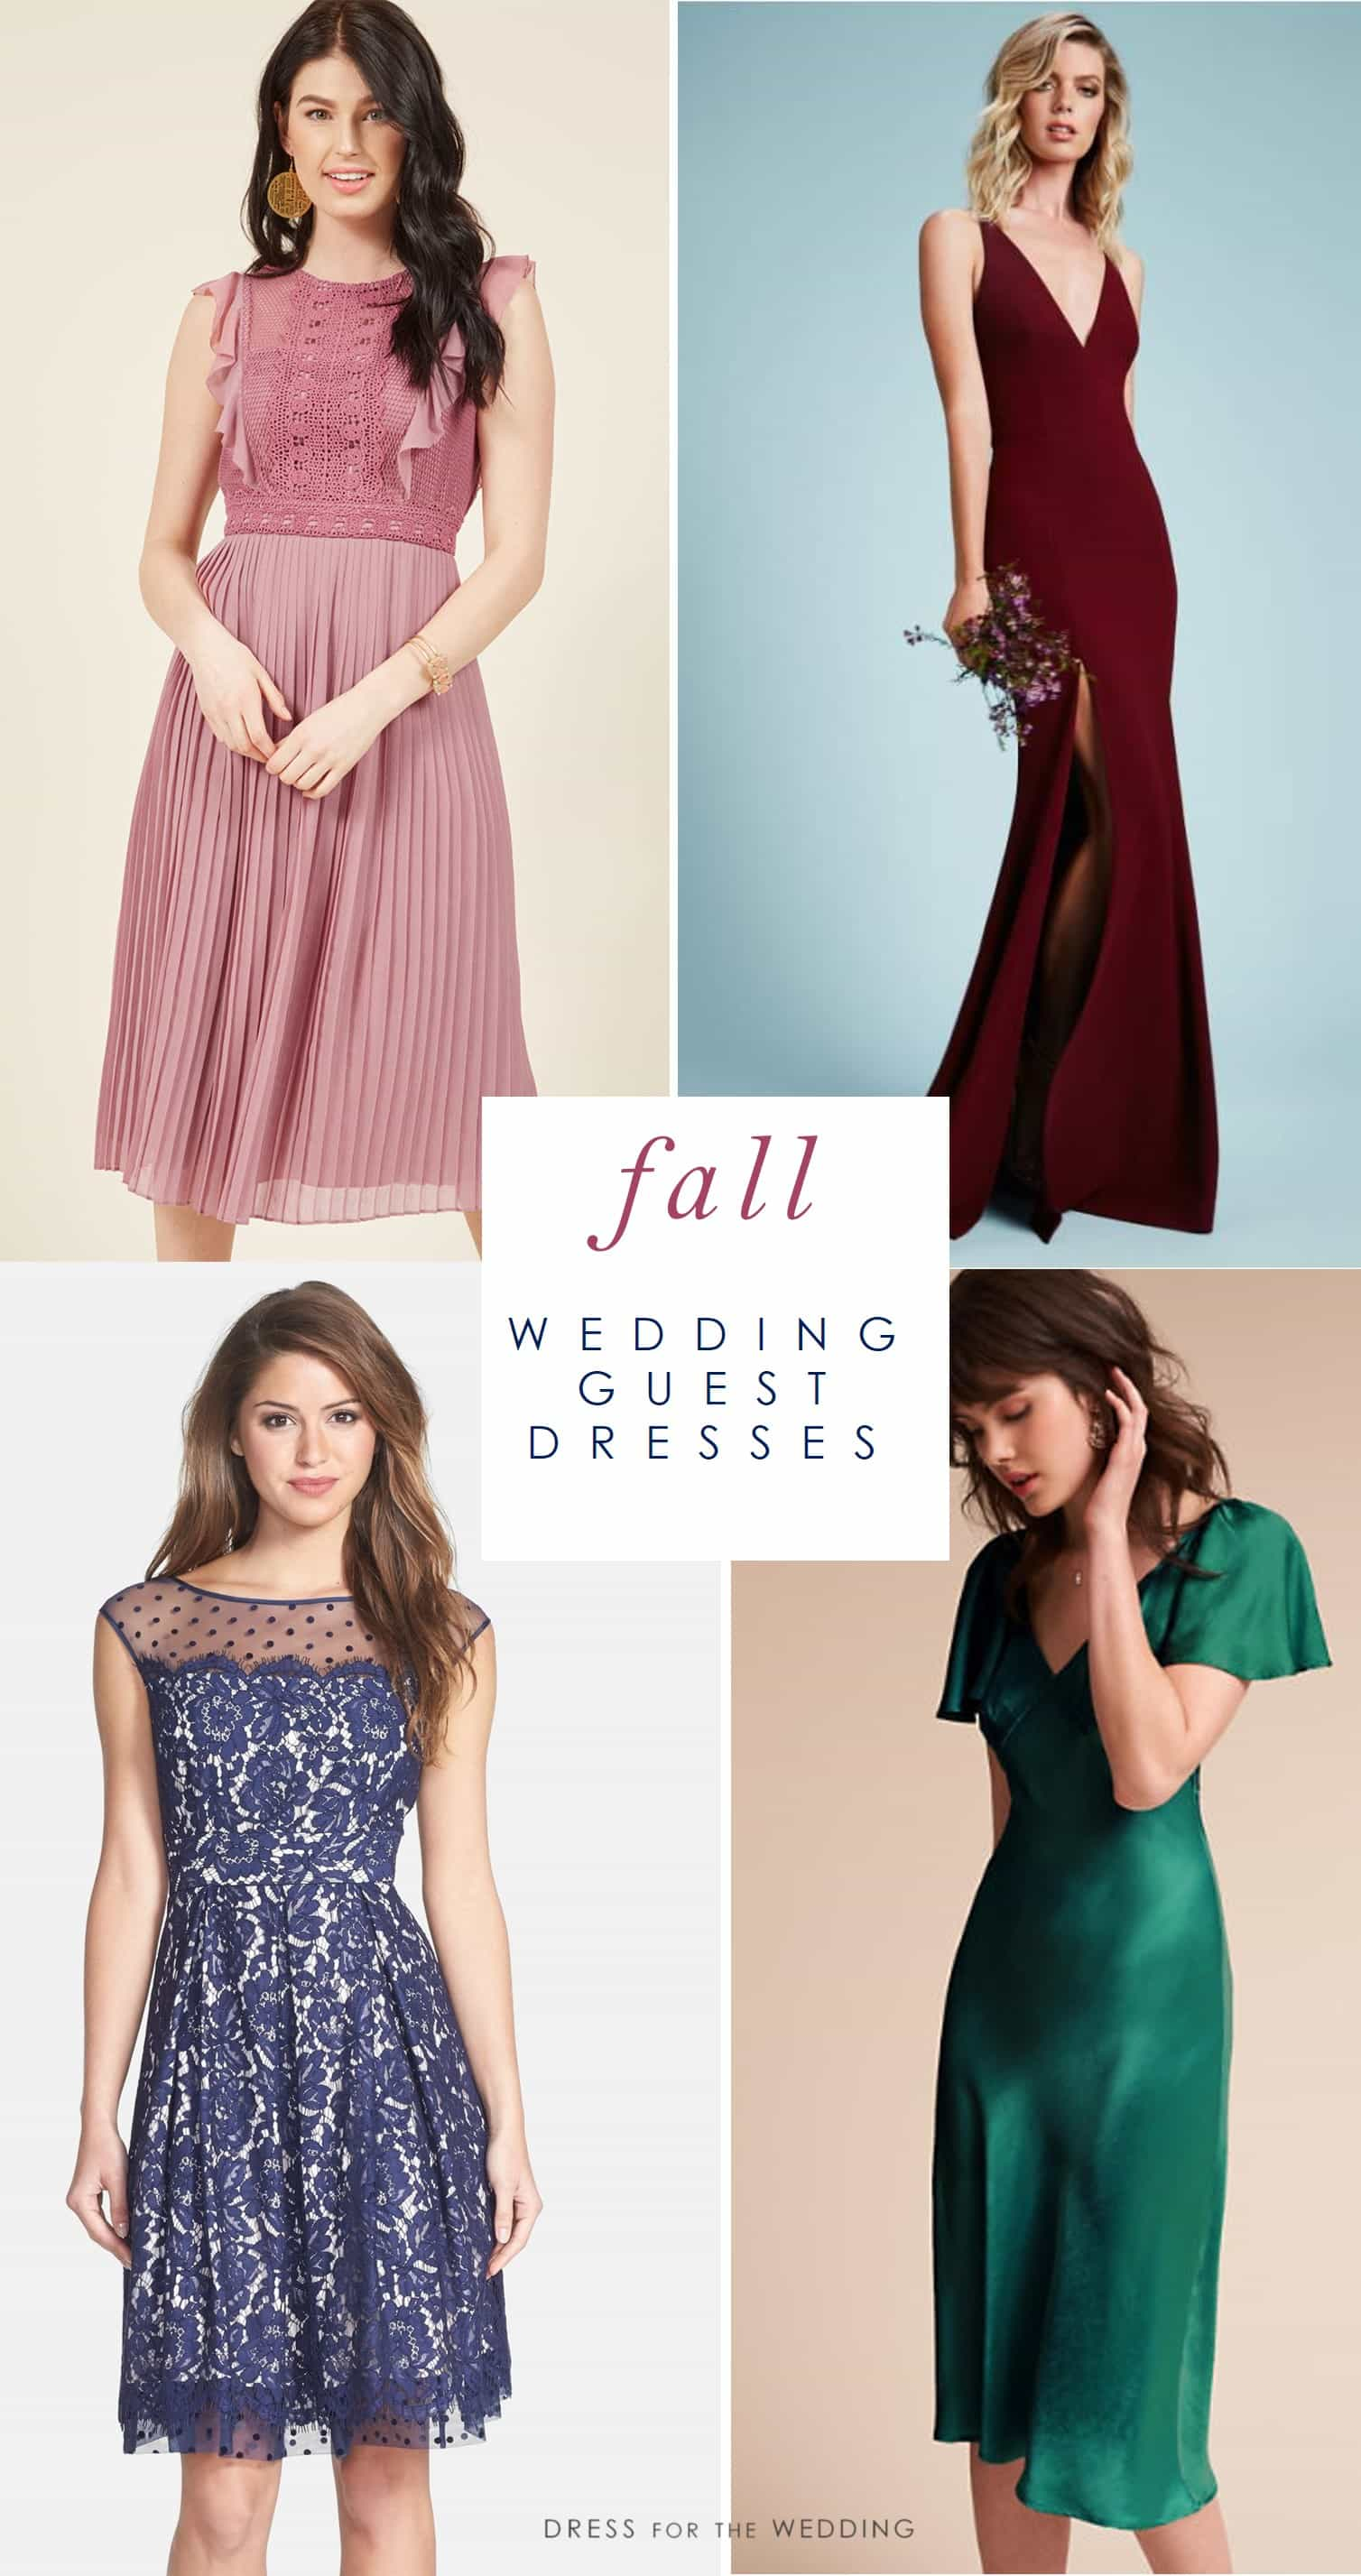 Fall wedding guest dresses what to wear to a fall wedding for Dresses for a fall wedding